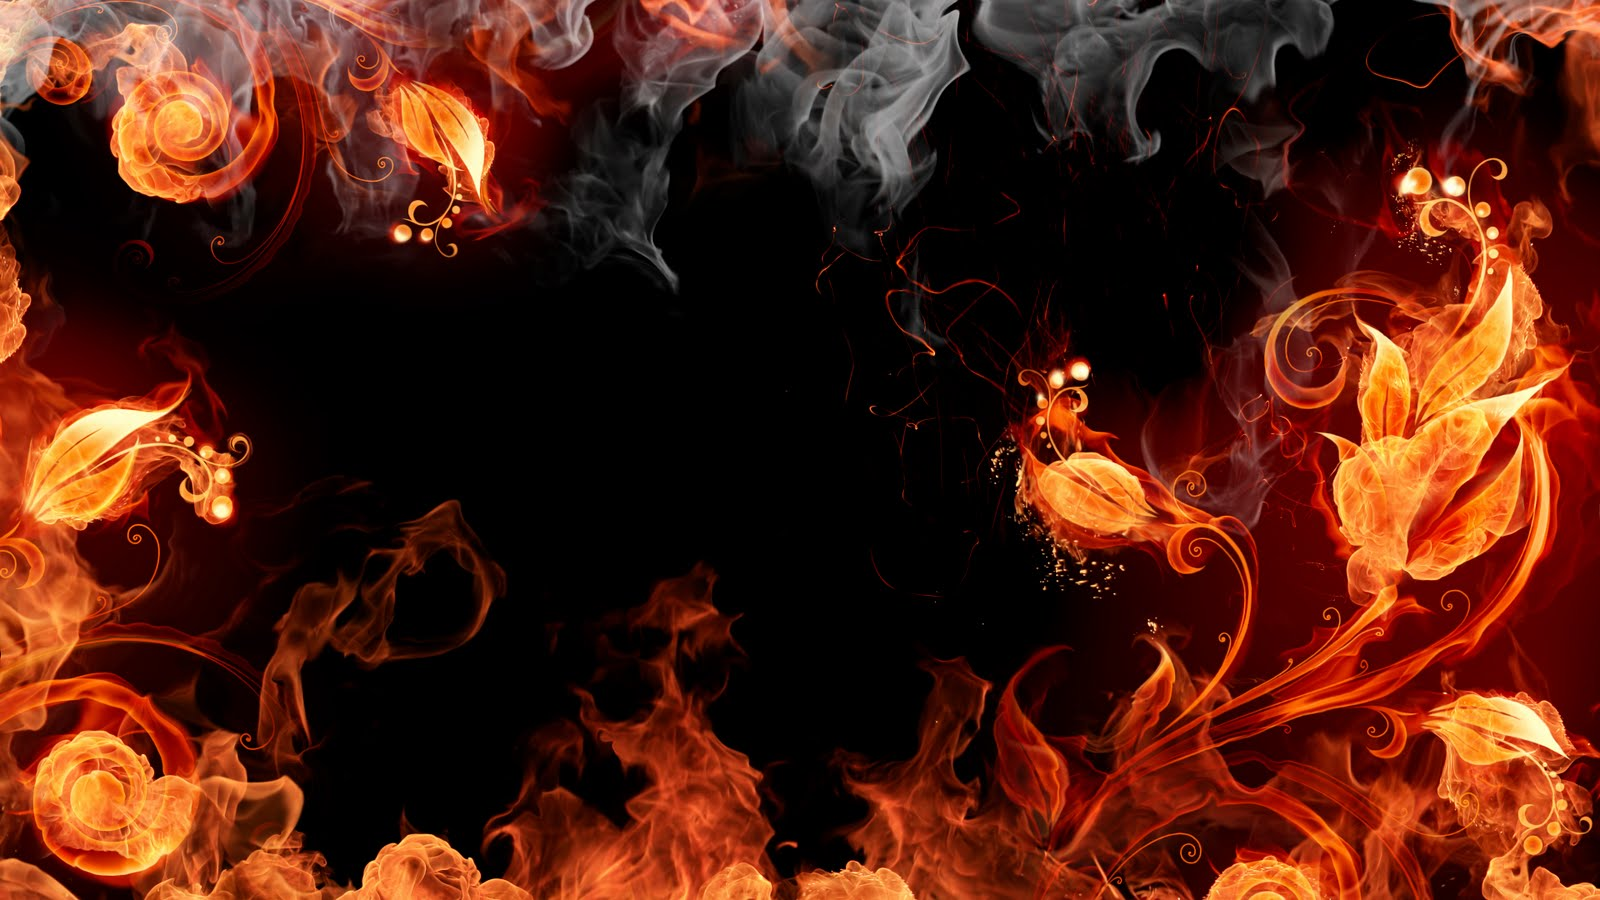 Red Fire Background wallpaper Red Fire Background hd wallpaper 1600x900